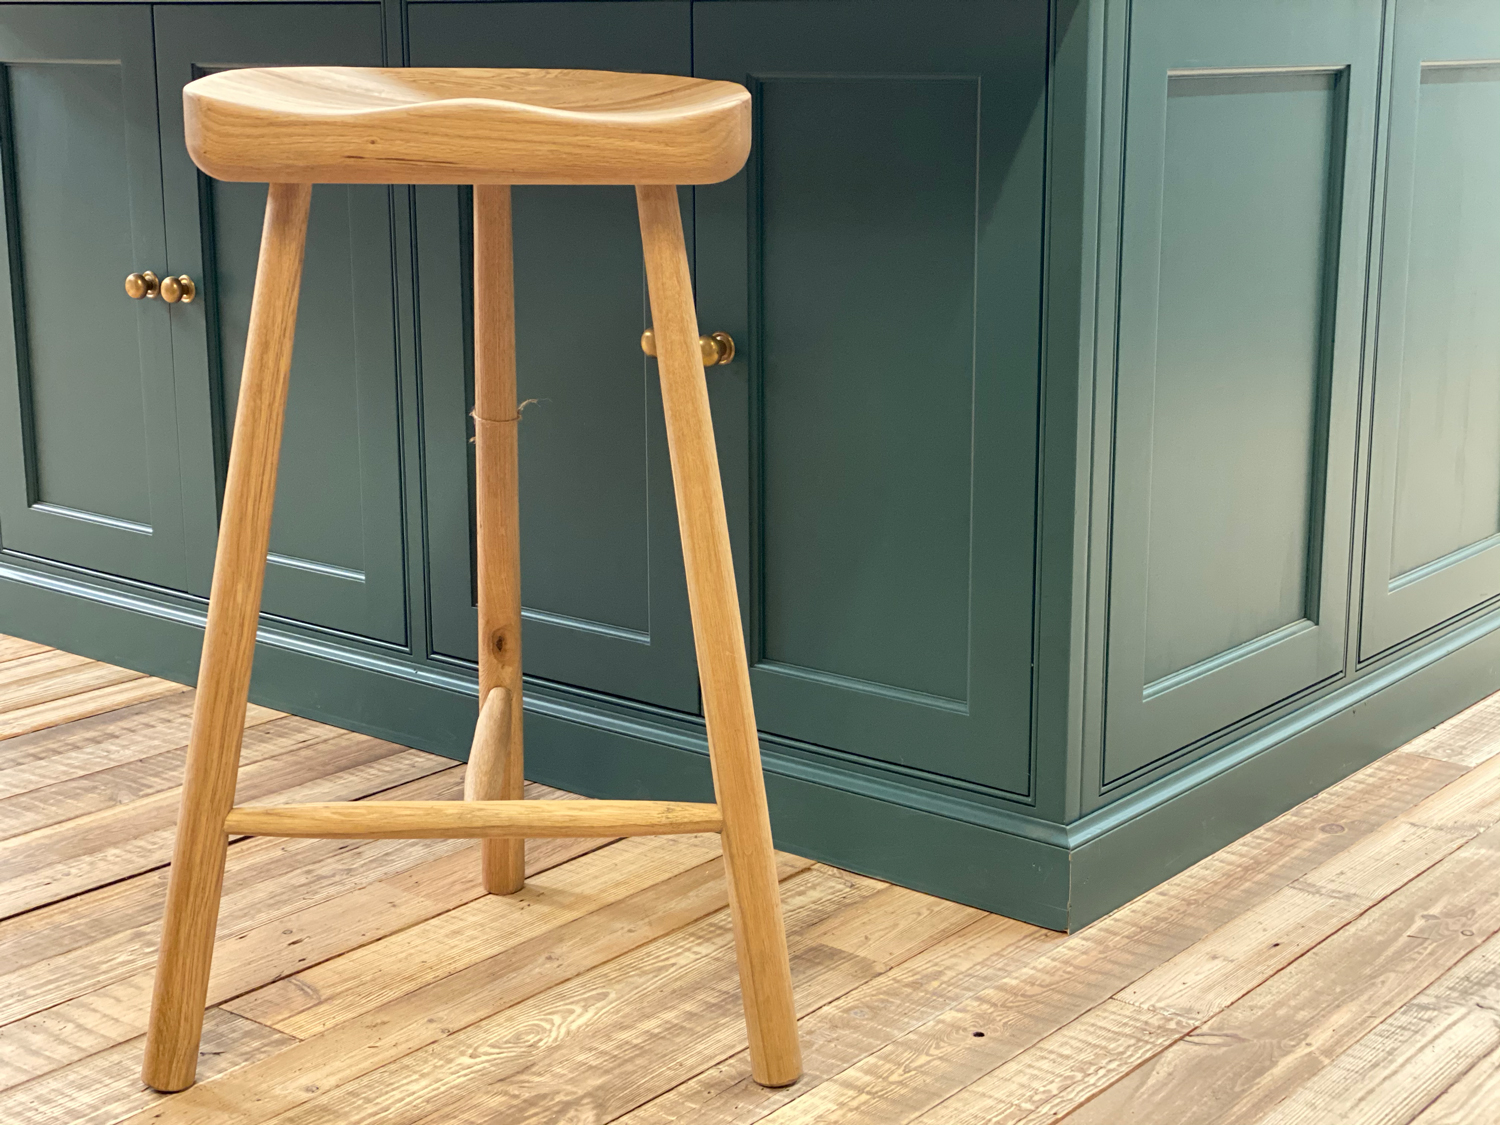 Clean oak three legged bar stool